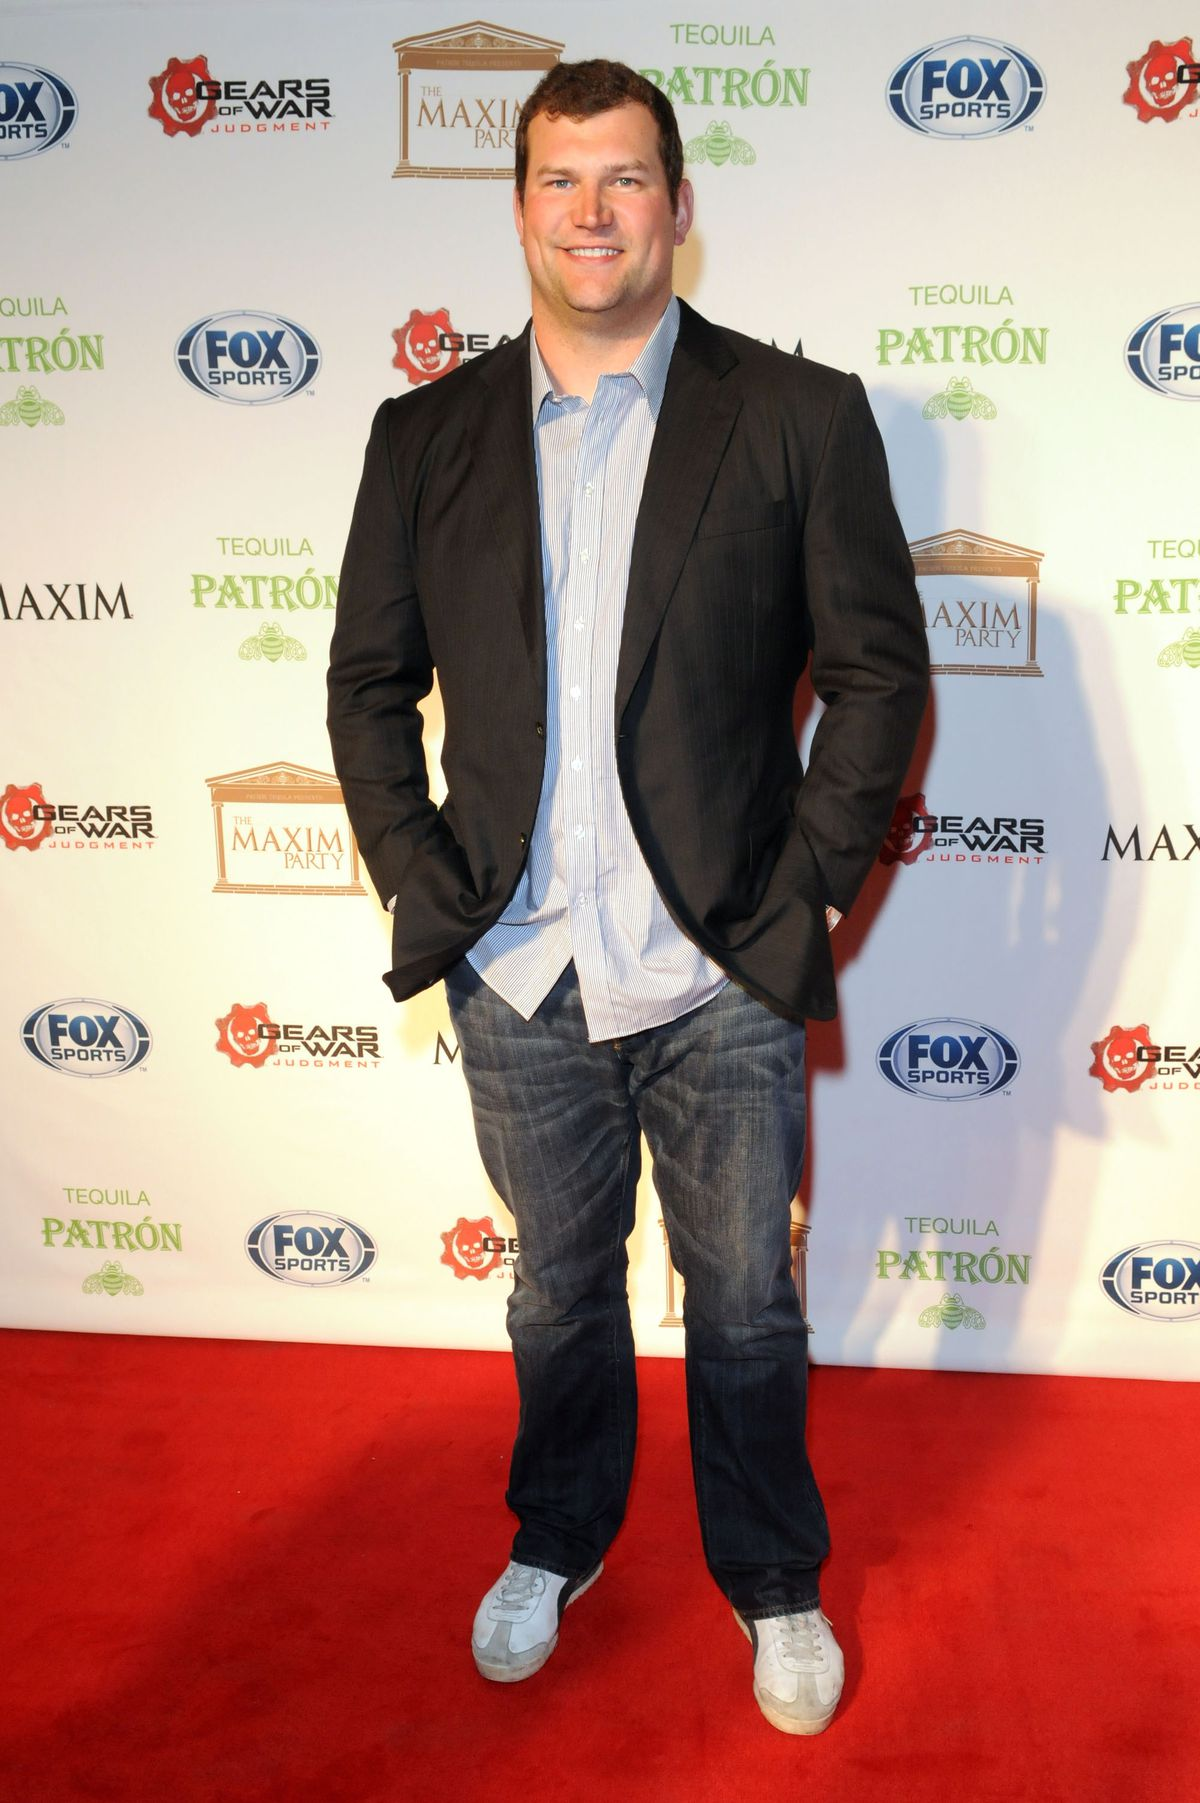 Patron Tequila Presents The Maxim Party With 'Gears of War: Judgment' For XBOX 360, FOX Sports & Starter